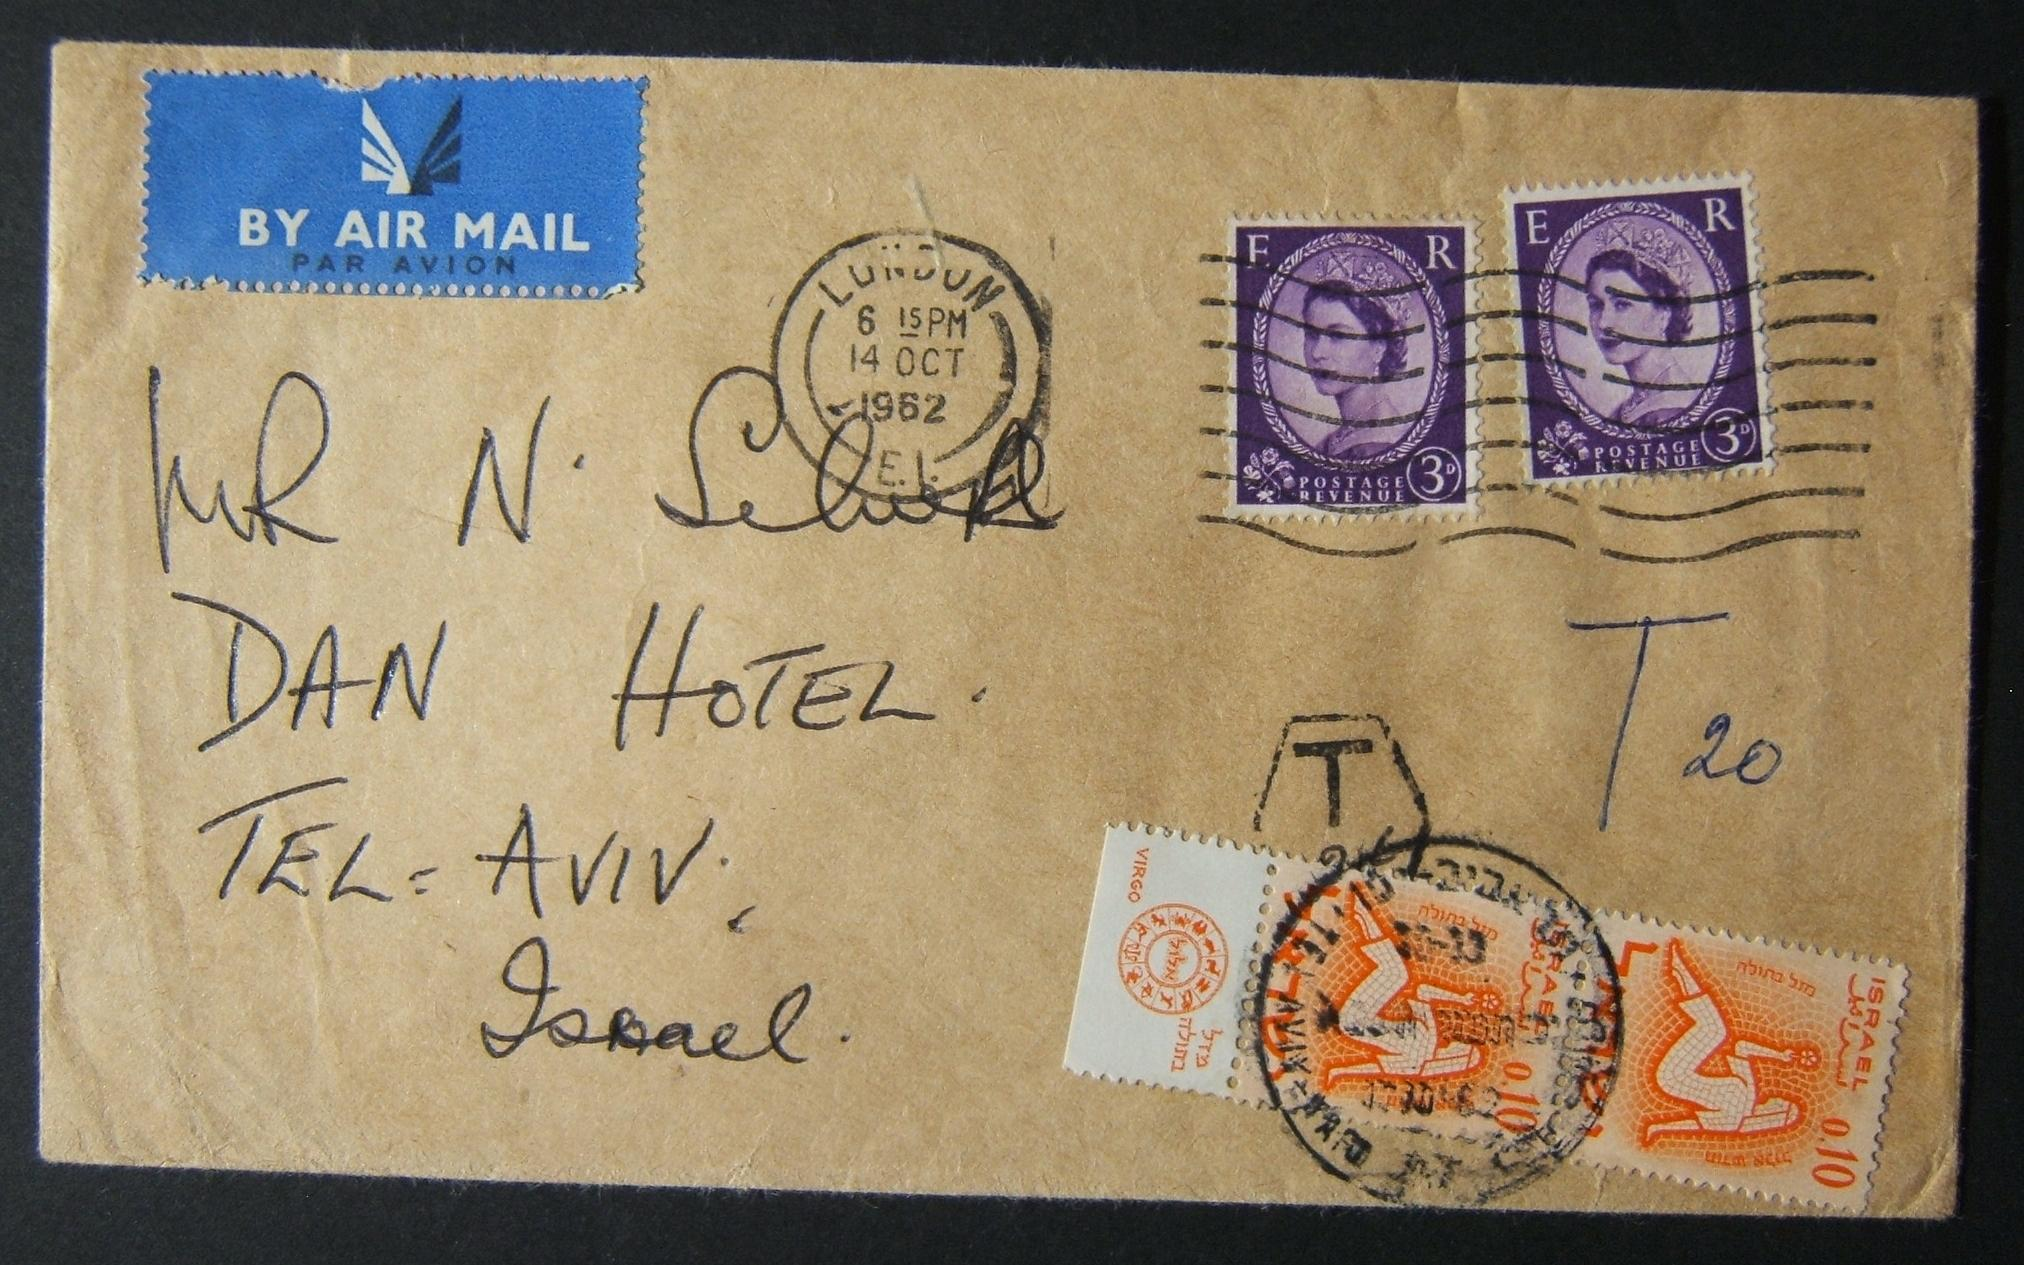 1962 incoming British taxed mail: 14 OCT 1962 airmail commercial cover ex LONDON to TLV underfranked at 6d and taxed 0.20L in Israel, paid 17-10-62 using tabbed vert pair 0.10L 196